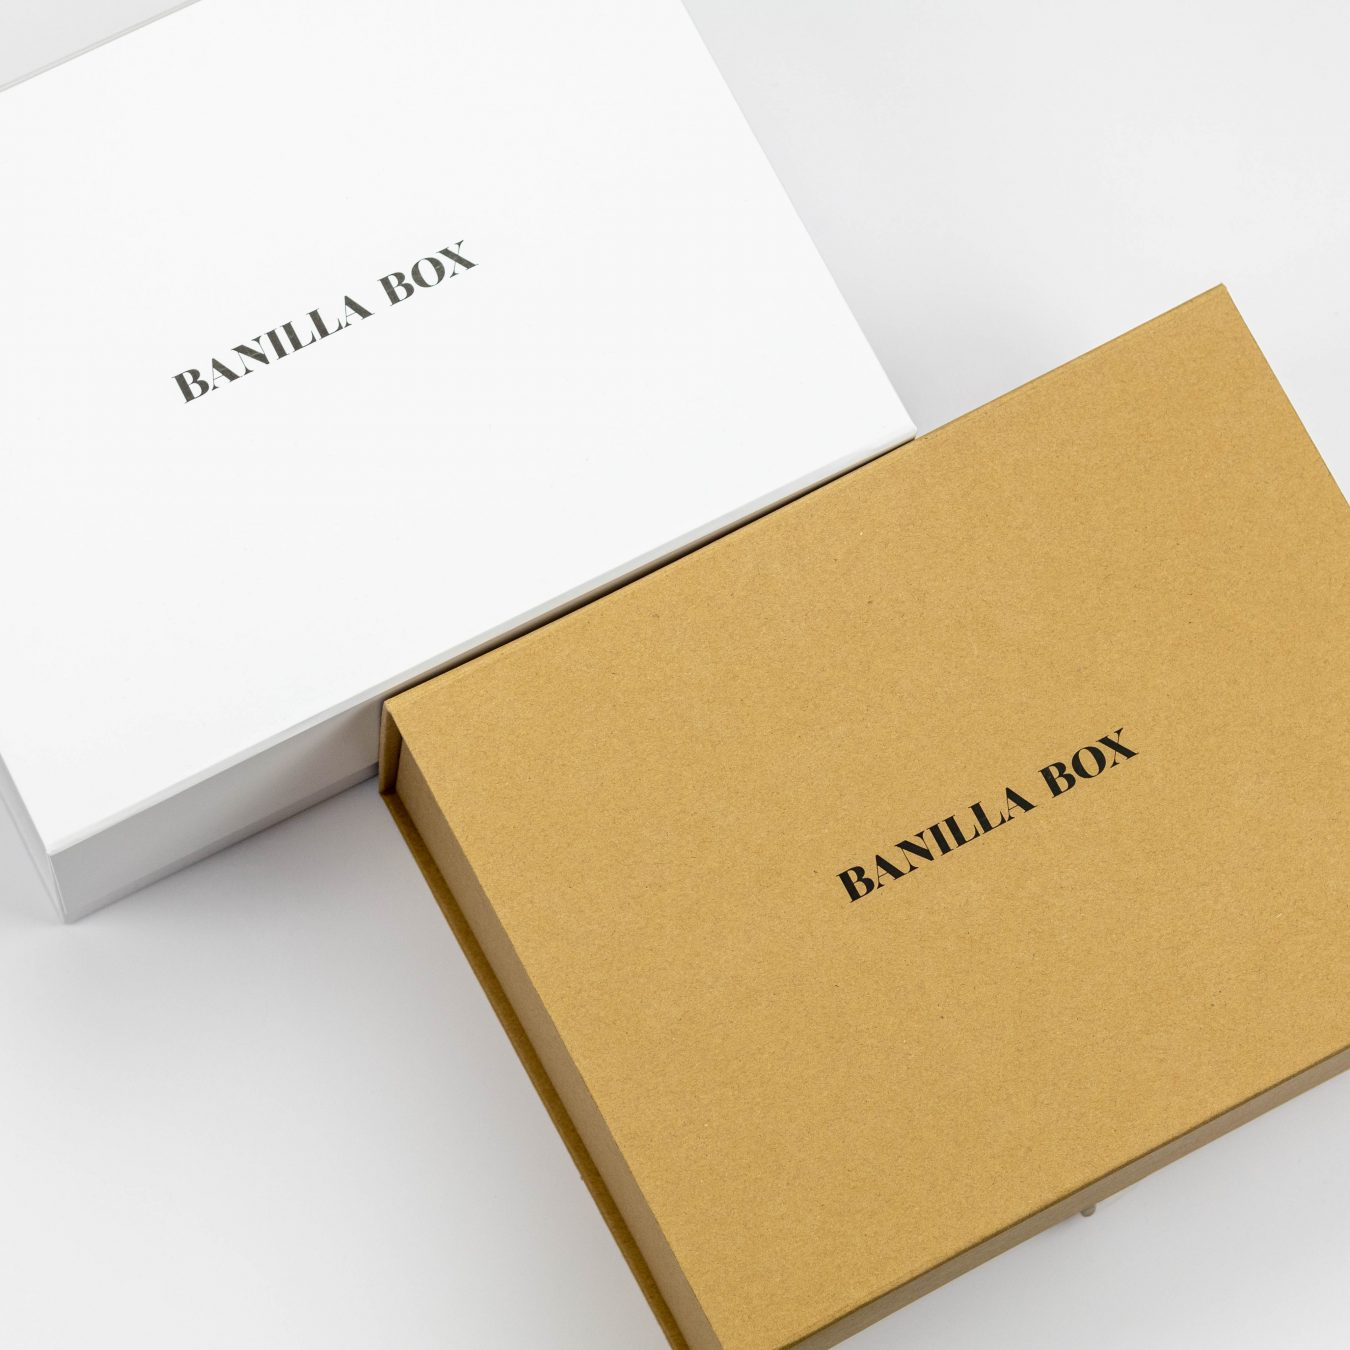 Banilla Box White and Kraft keepsake boxes